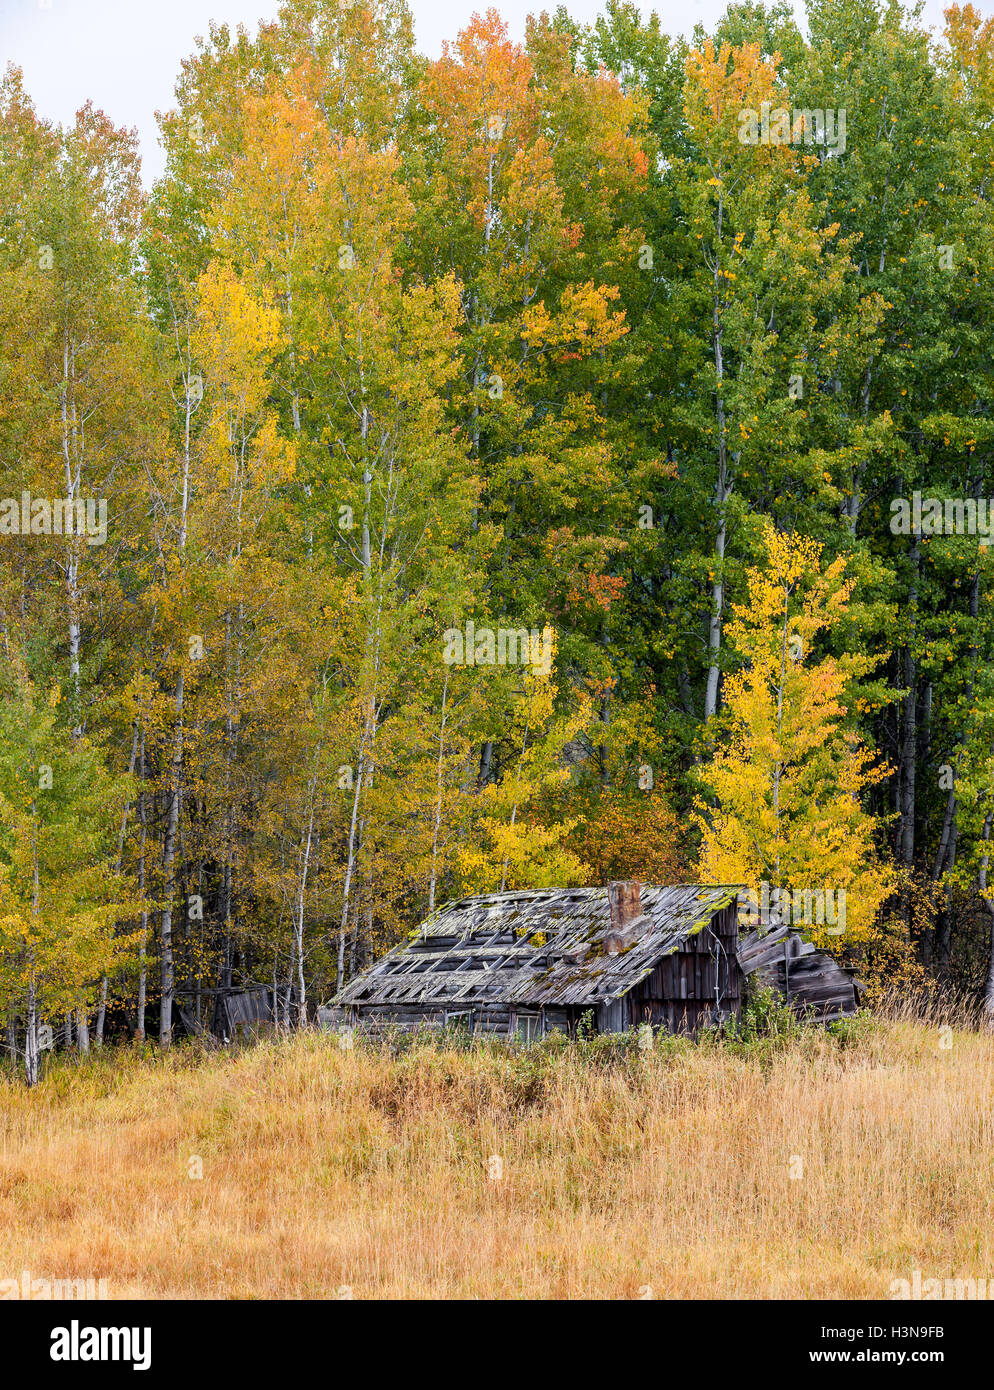 Old decrepit shed in autumn. - Stock Image